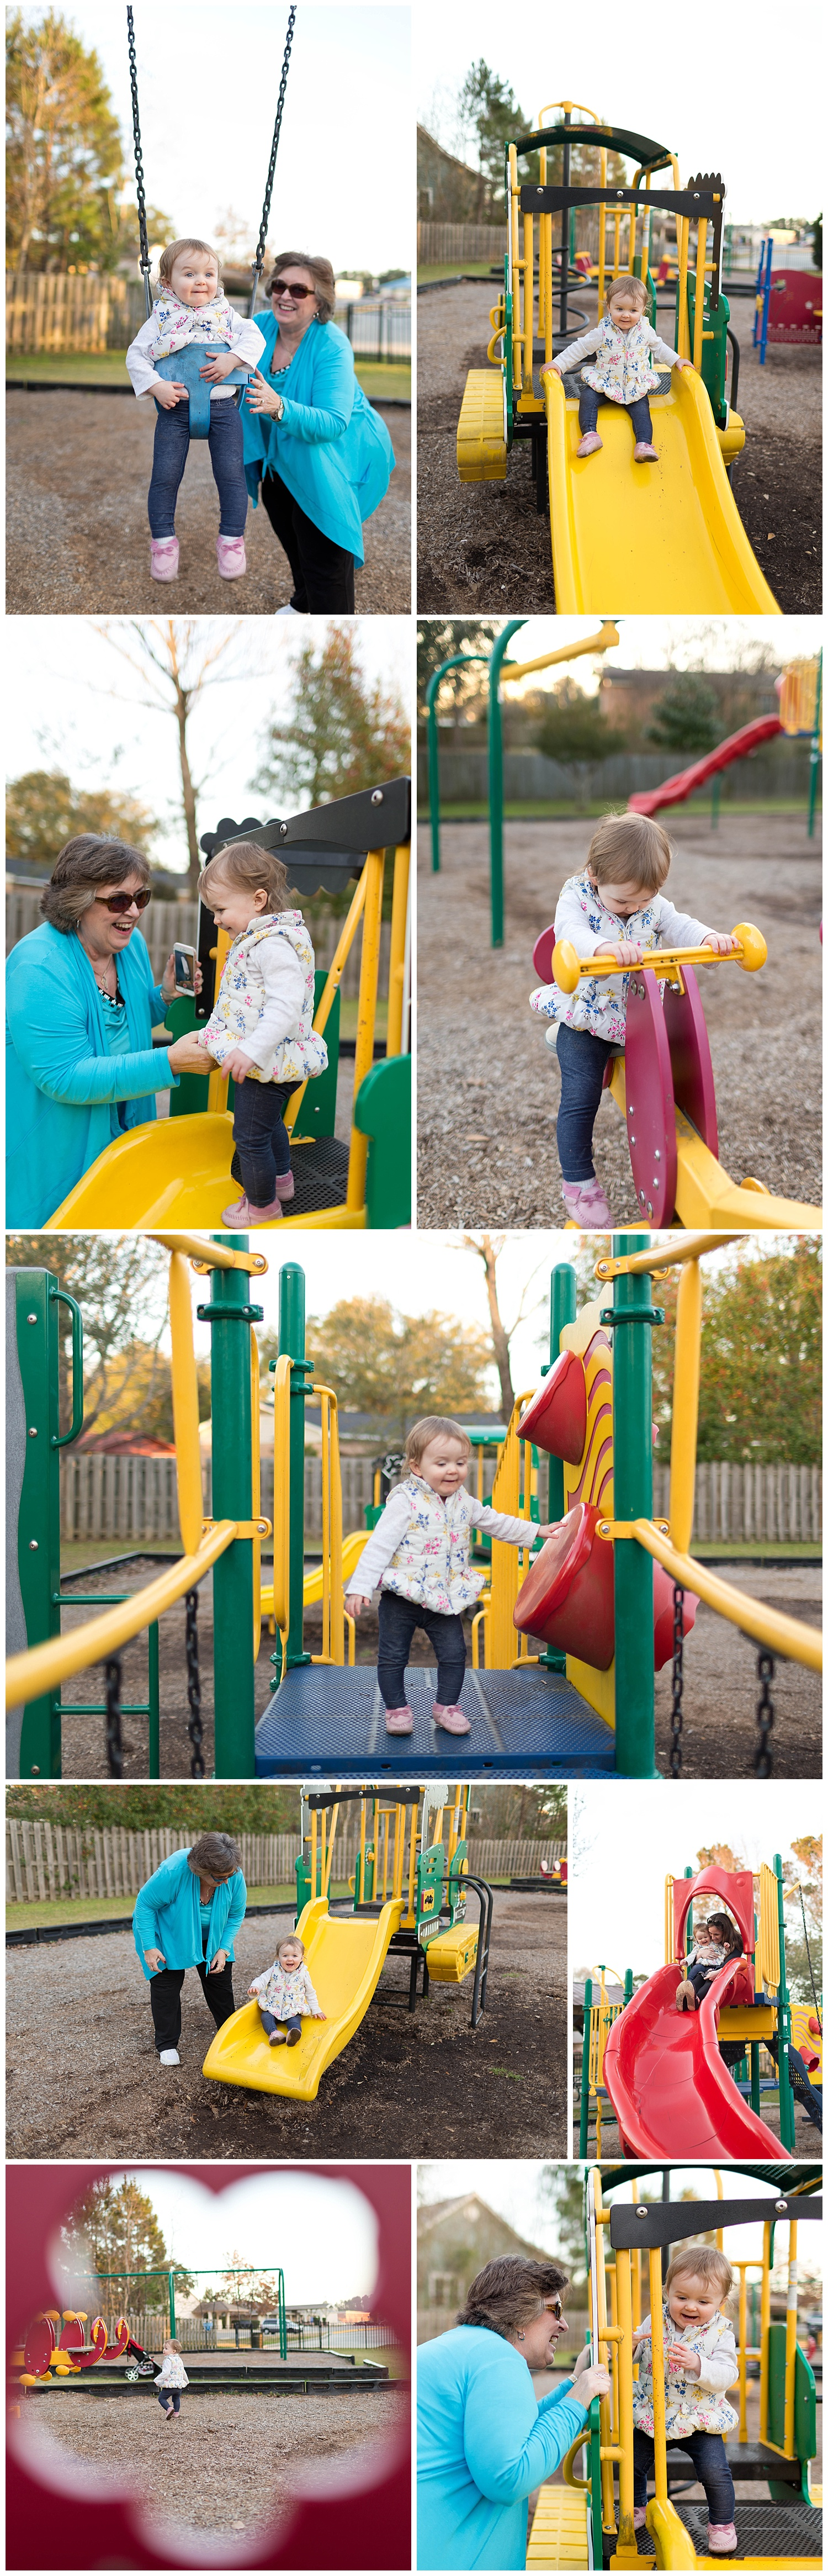 lifestyle family photos at park in Ocean Springs, Mississippi